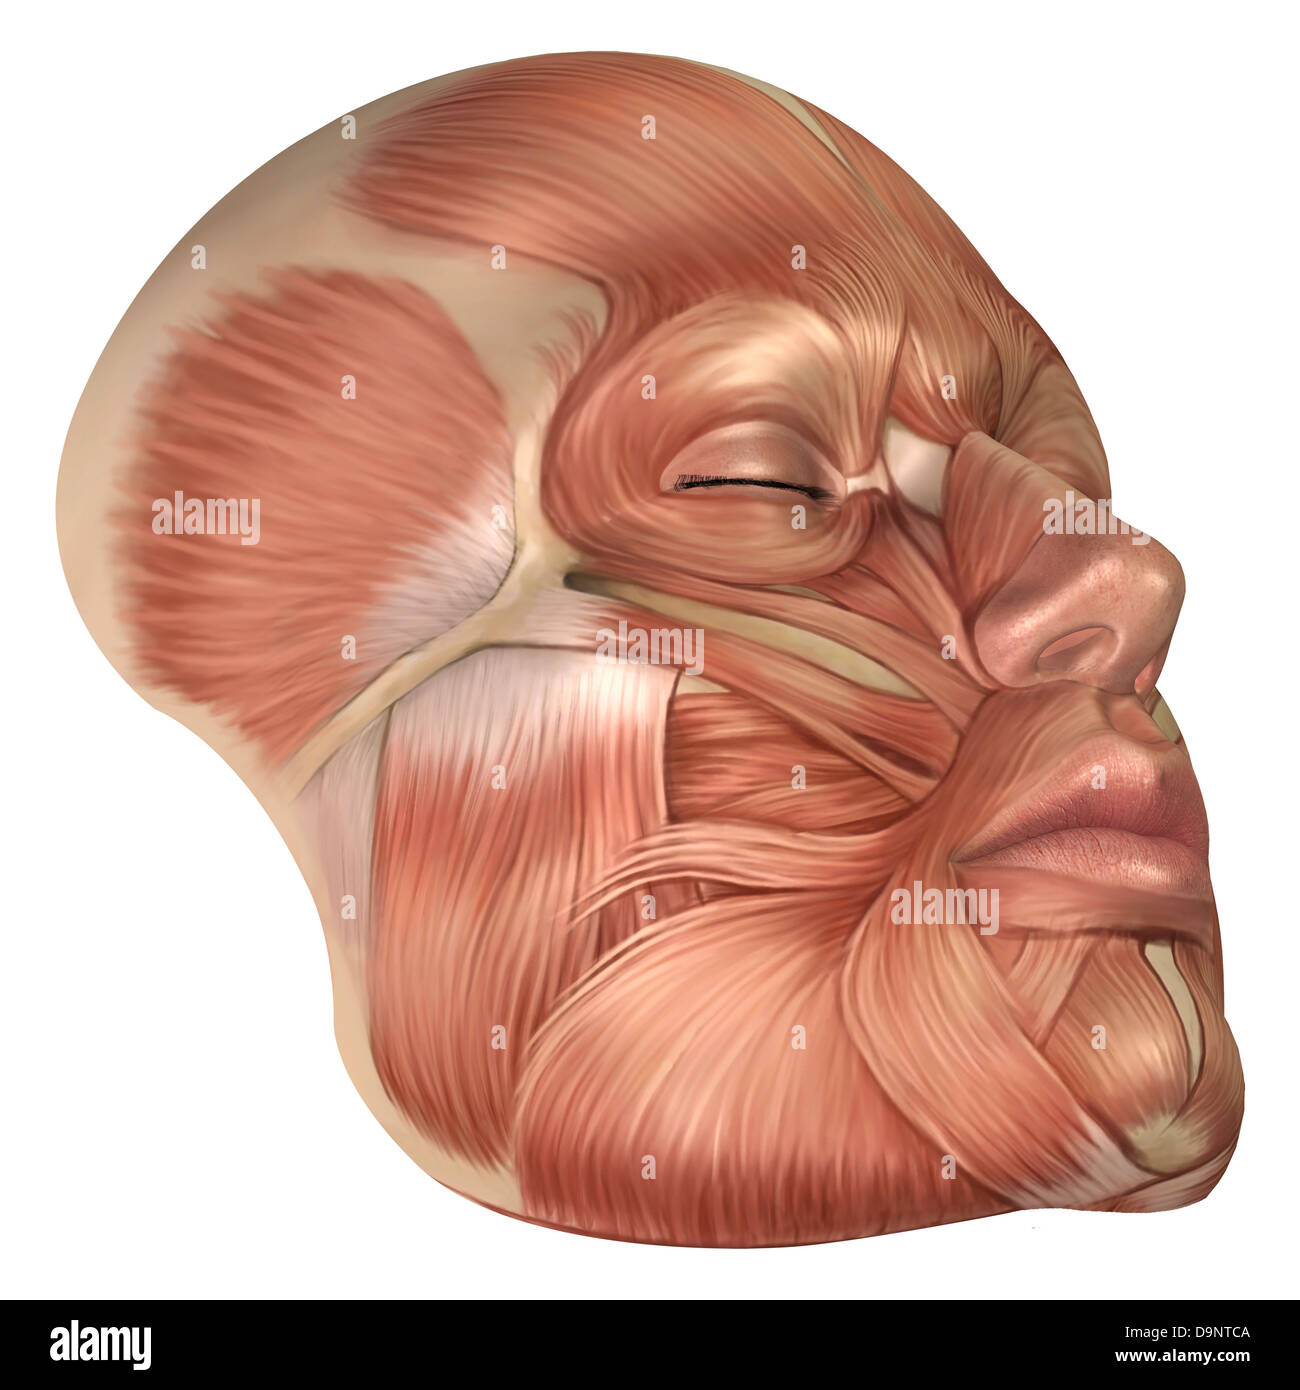 Anatomy of human face muscles Stock Photo: 57643162 - Alamy